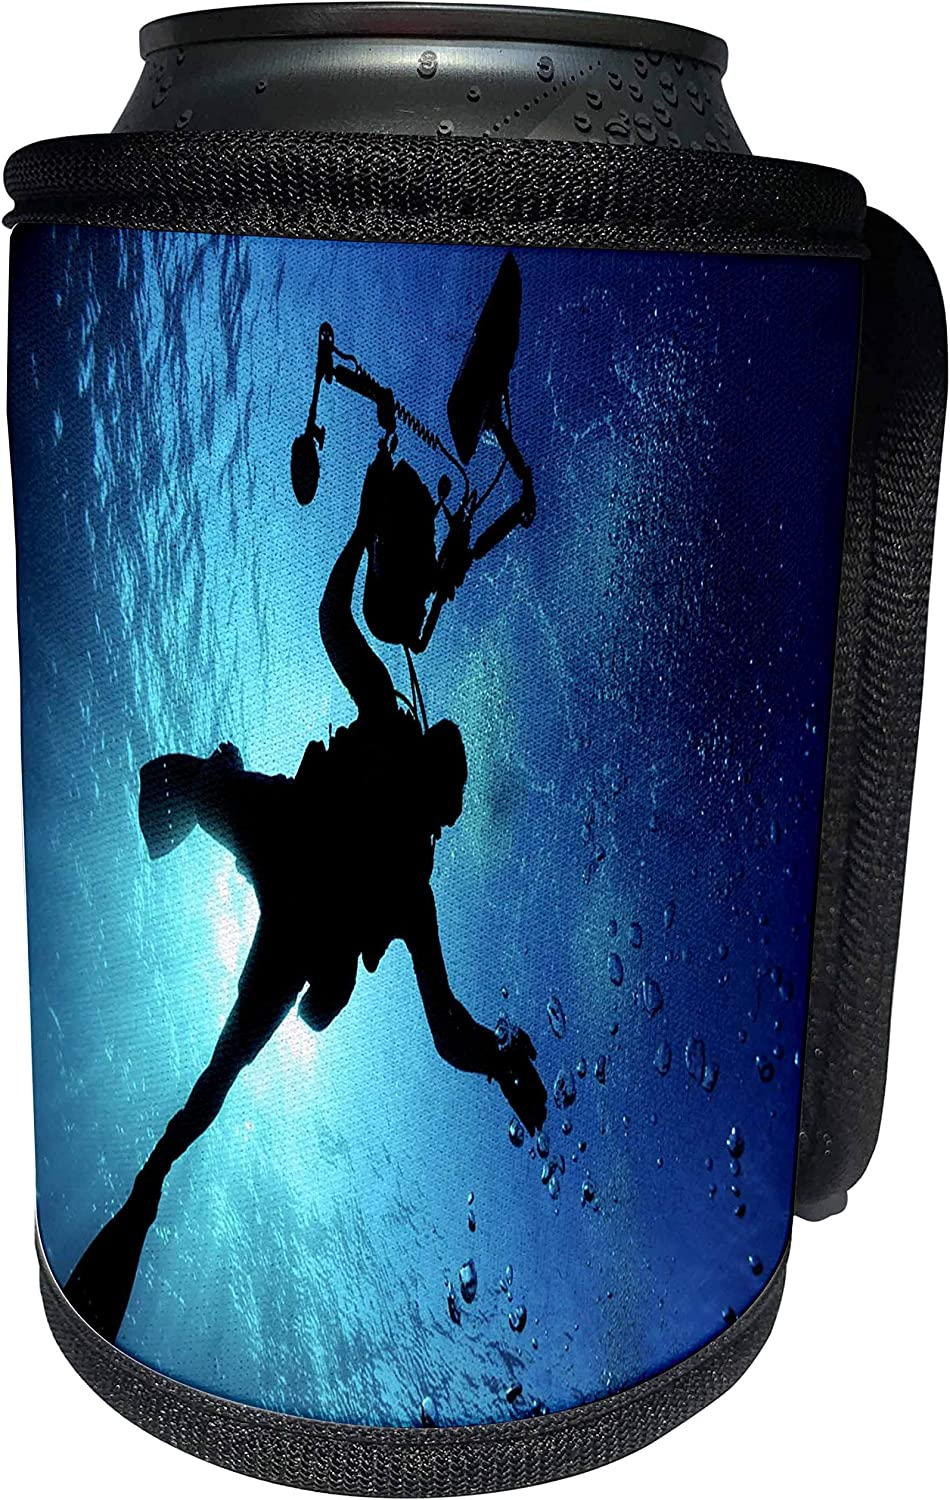 3dRose Underwater Diver - Image of Underwater Diver and Cameraman - Can Cooler Bottle Wrap (cc_256318_1)